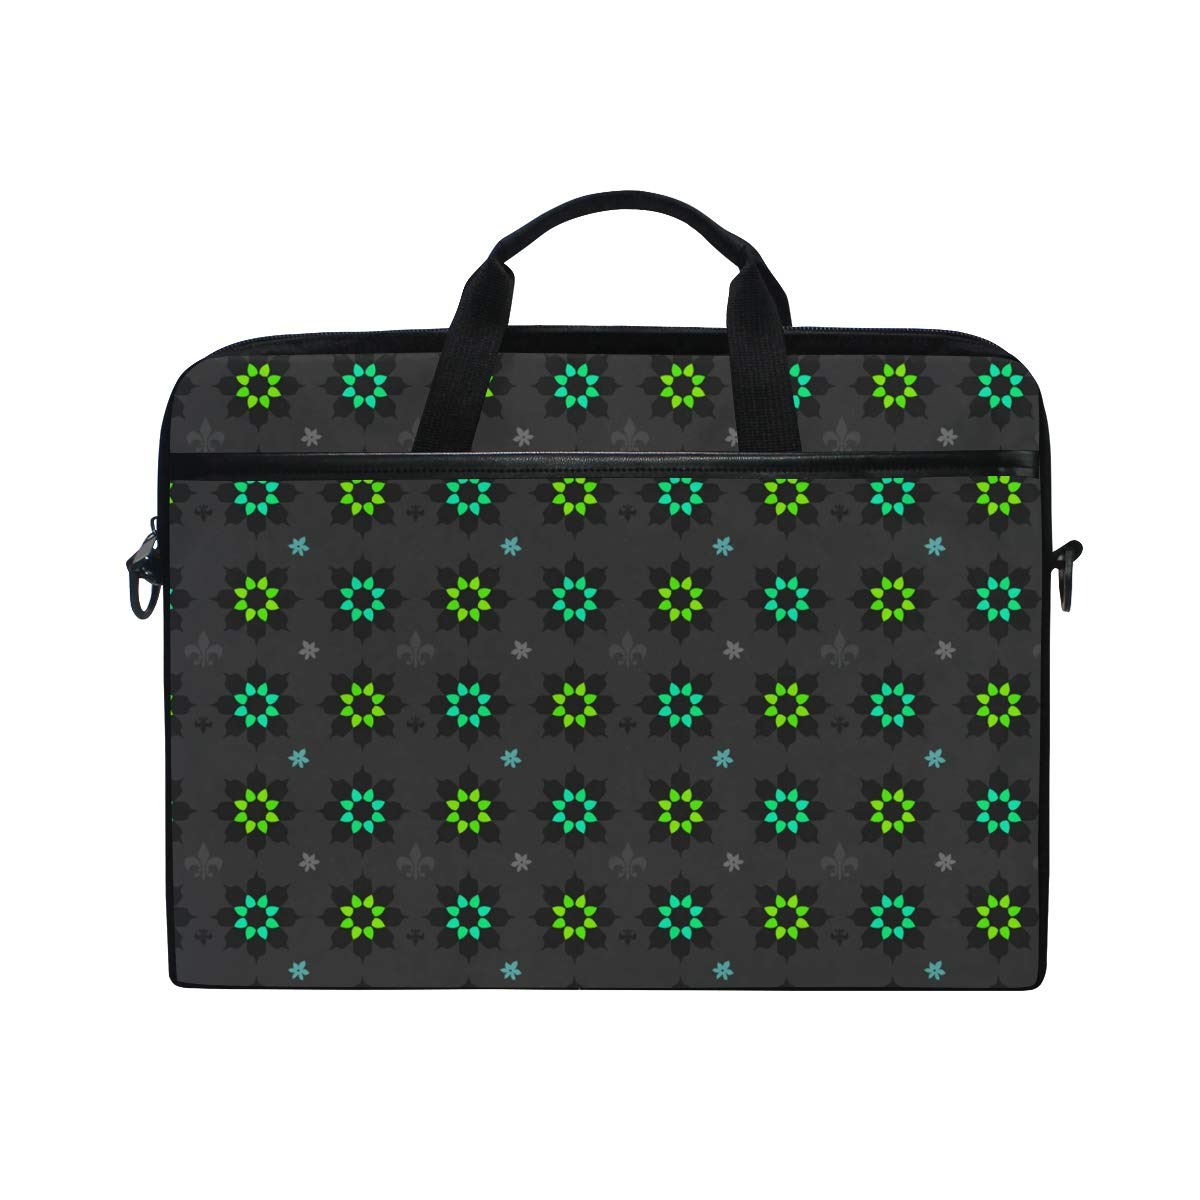 Green Ornamentation Mens and Womens Computer Bags Shoulder Bags Suitable for 15 Inch Computers Handbags Briefcases